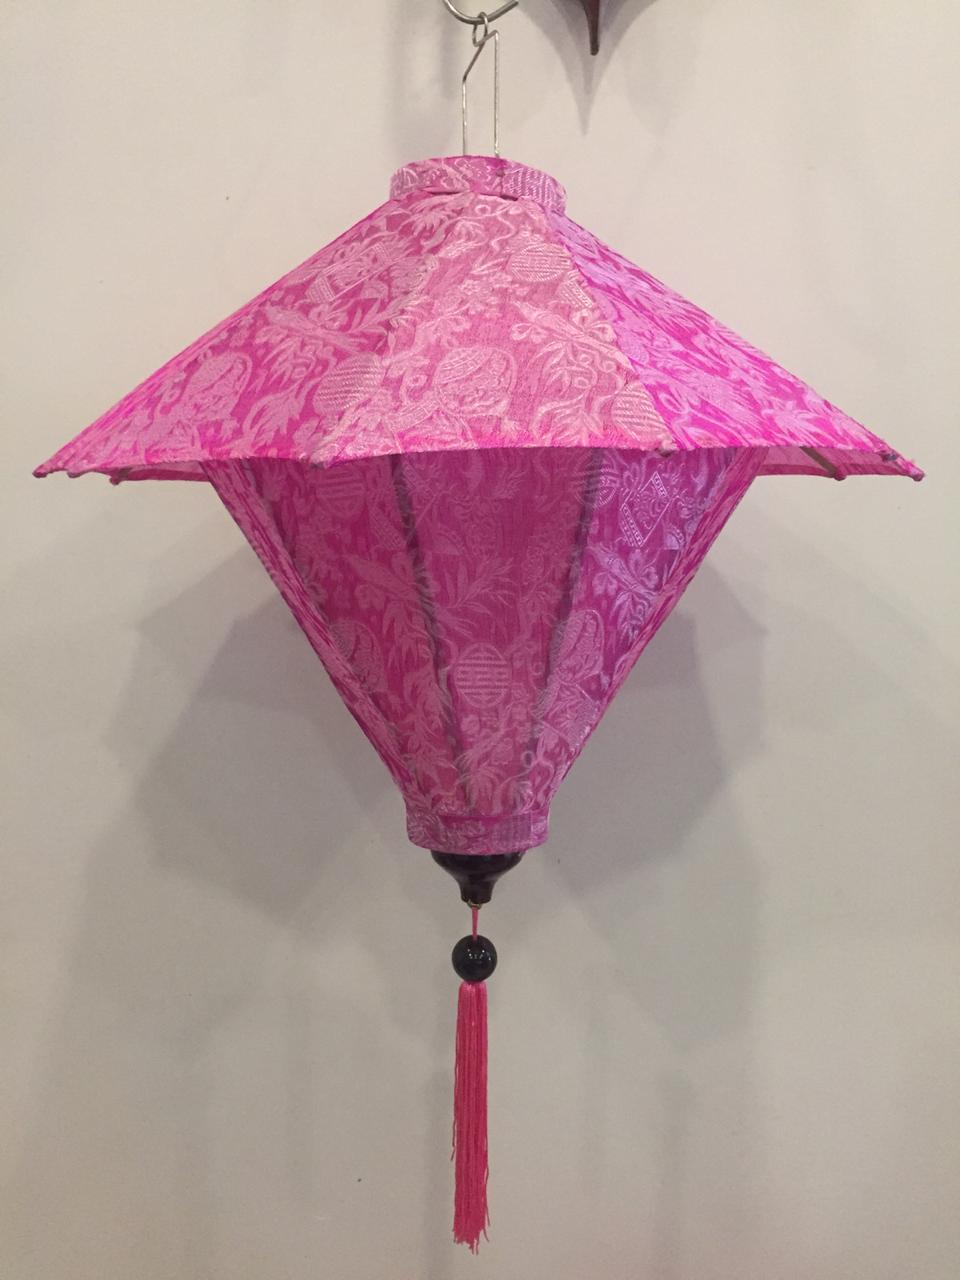 Umbrella Silk Lantern safimex JSC